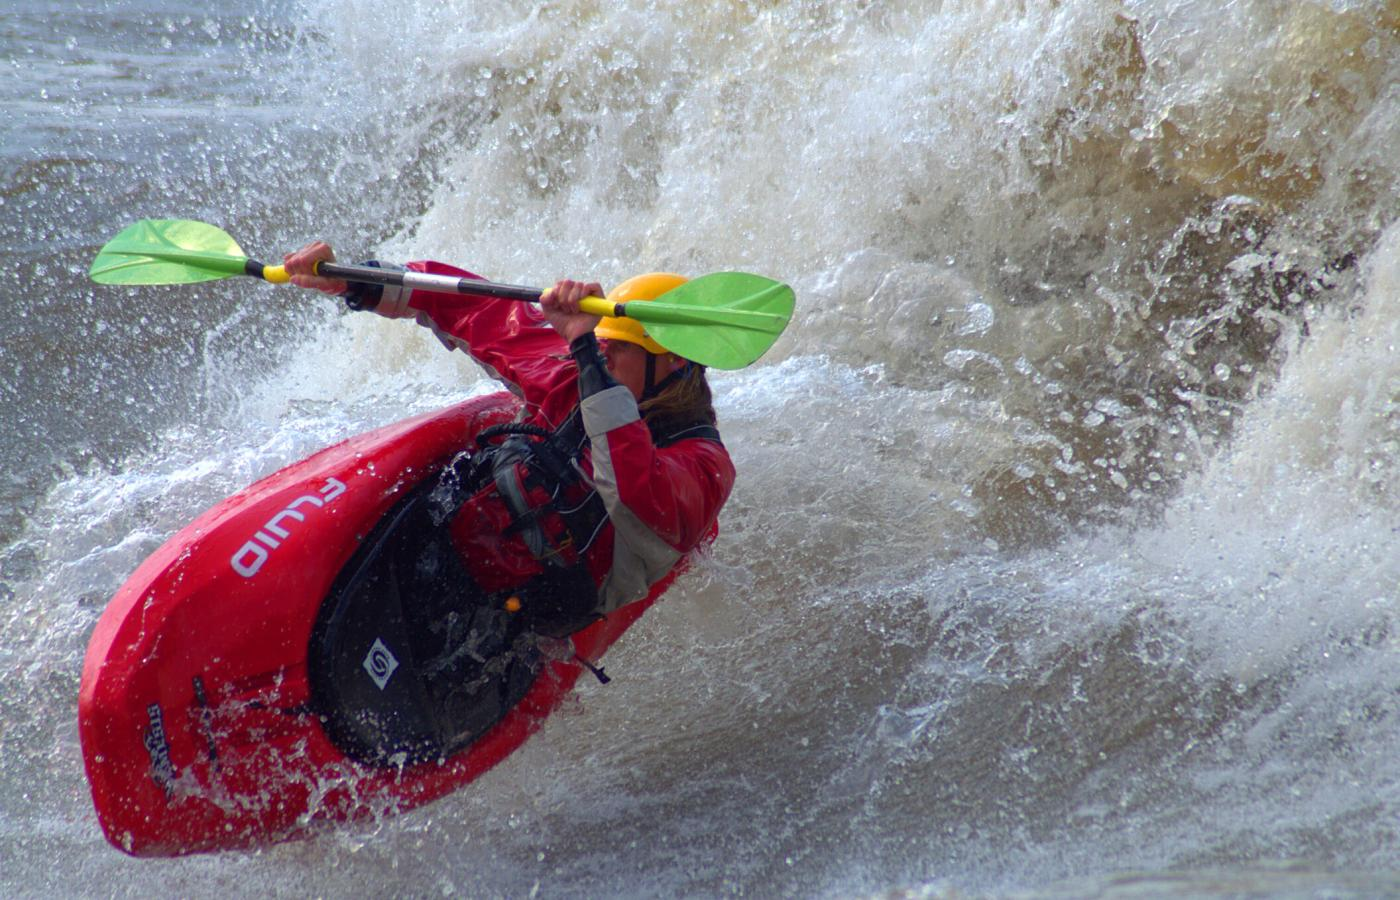 Playboating in the Slave River Rapids near Fort Smith, Northwest Territories